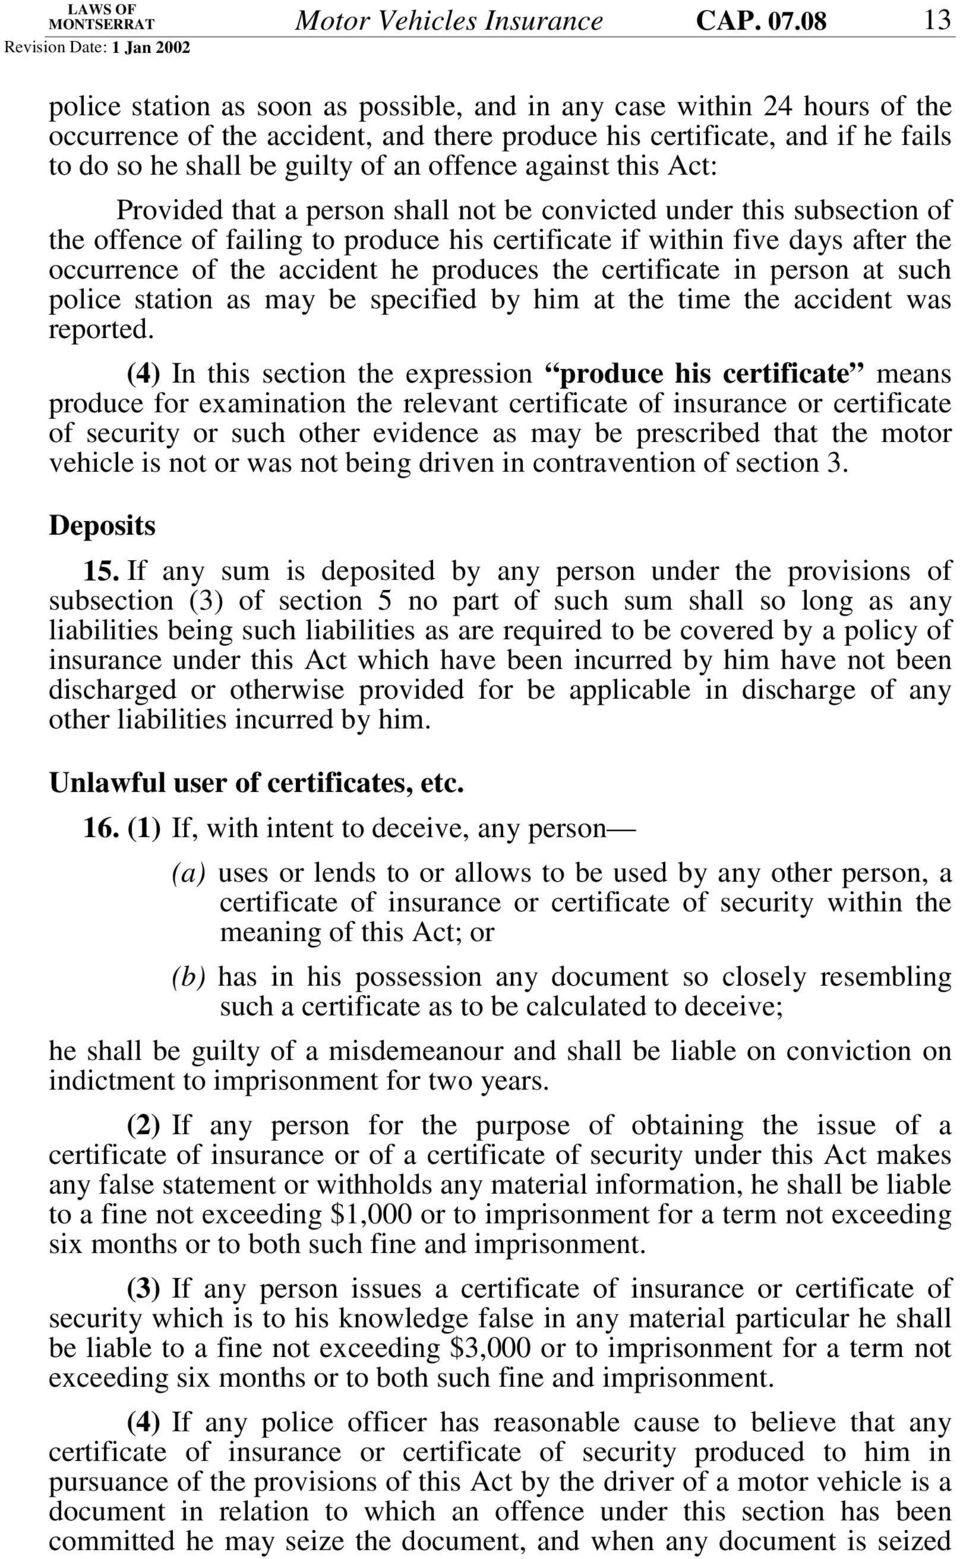 offence against this Act: Provided that a person shall not be convicted under this subsection of the offence of failing to produce his certificate if within five days after the occurrence of the